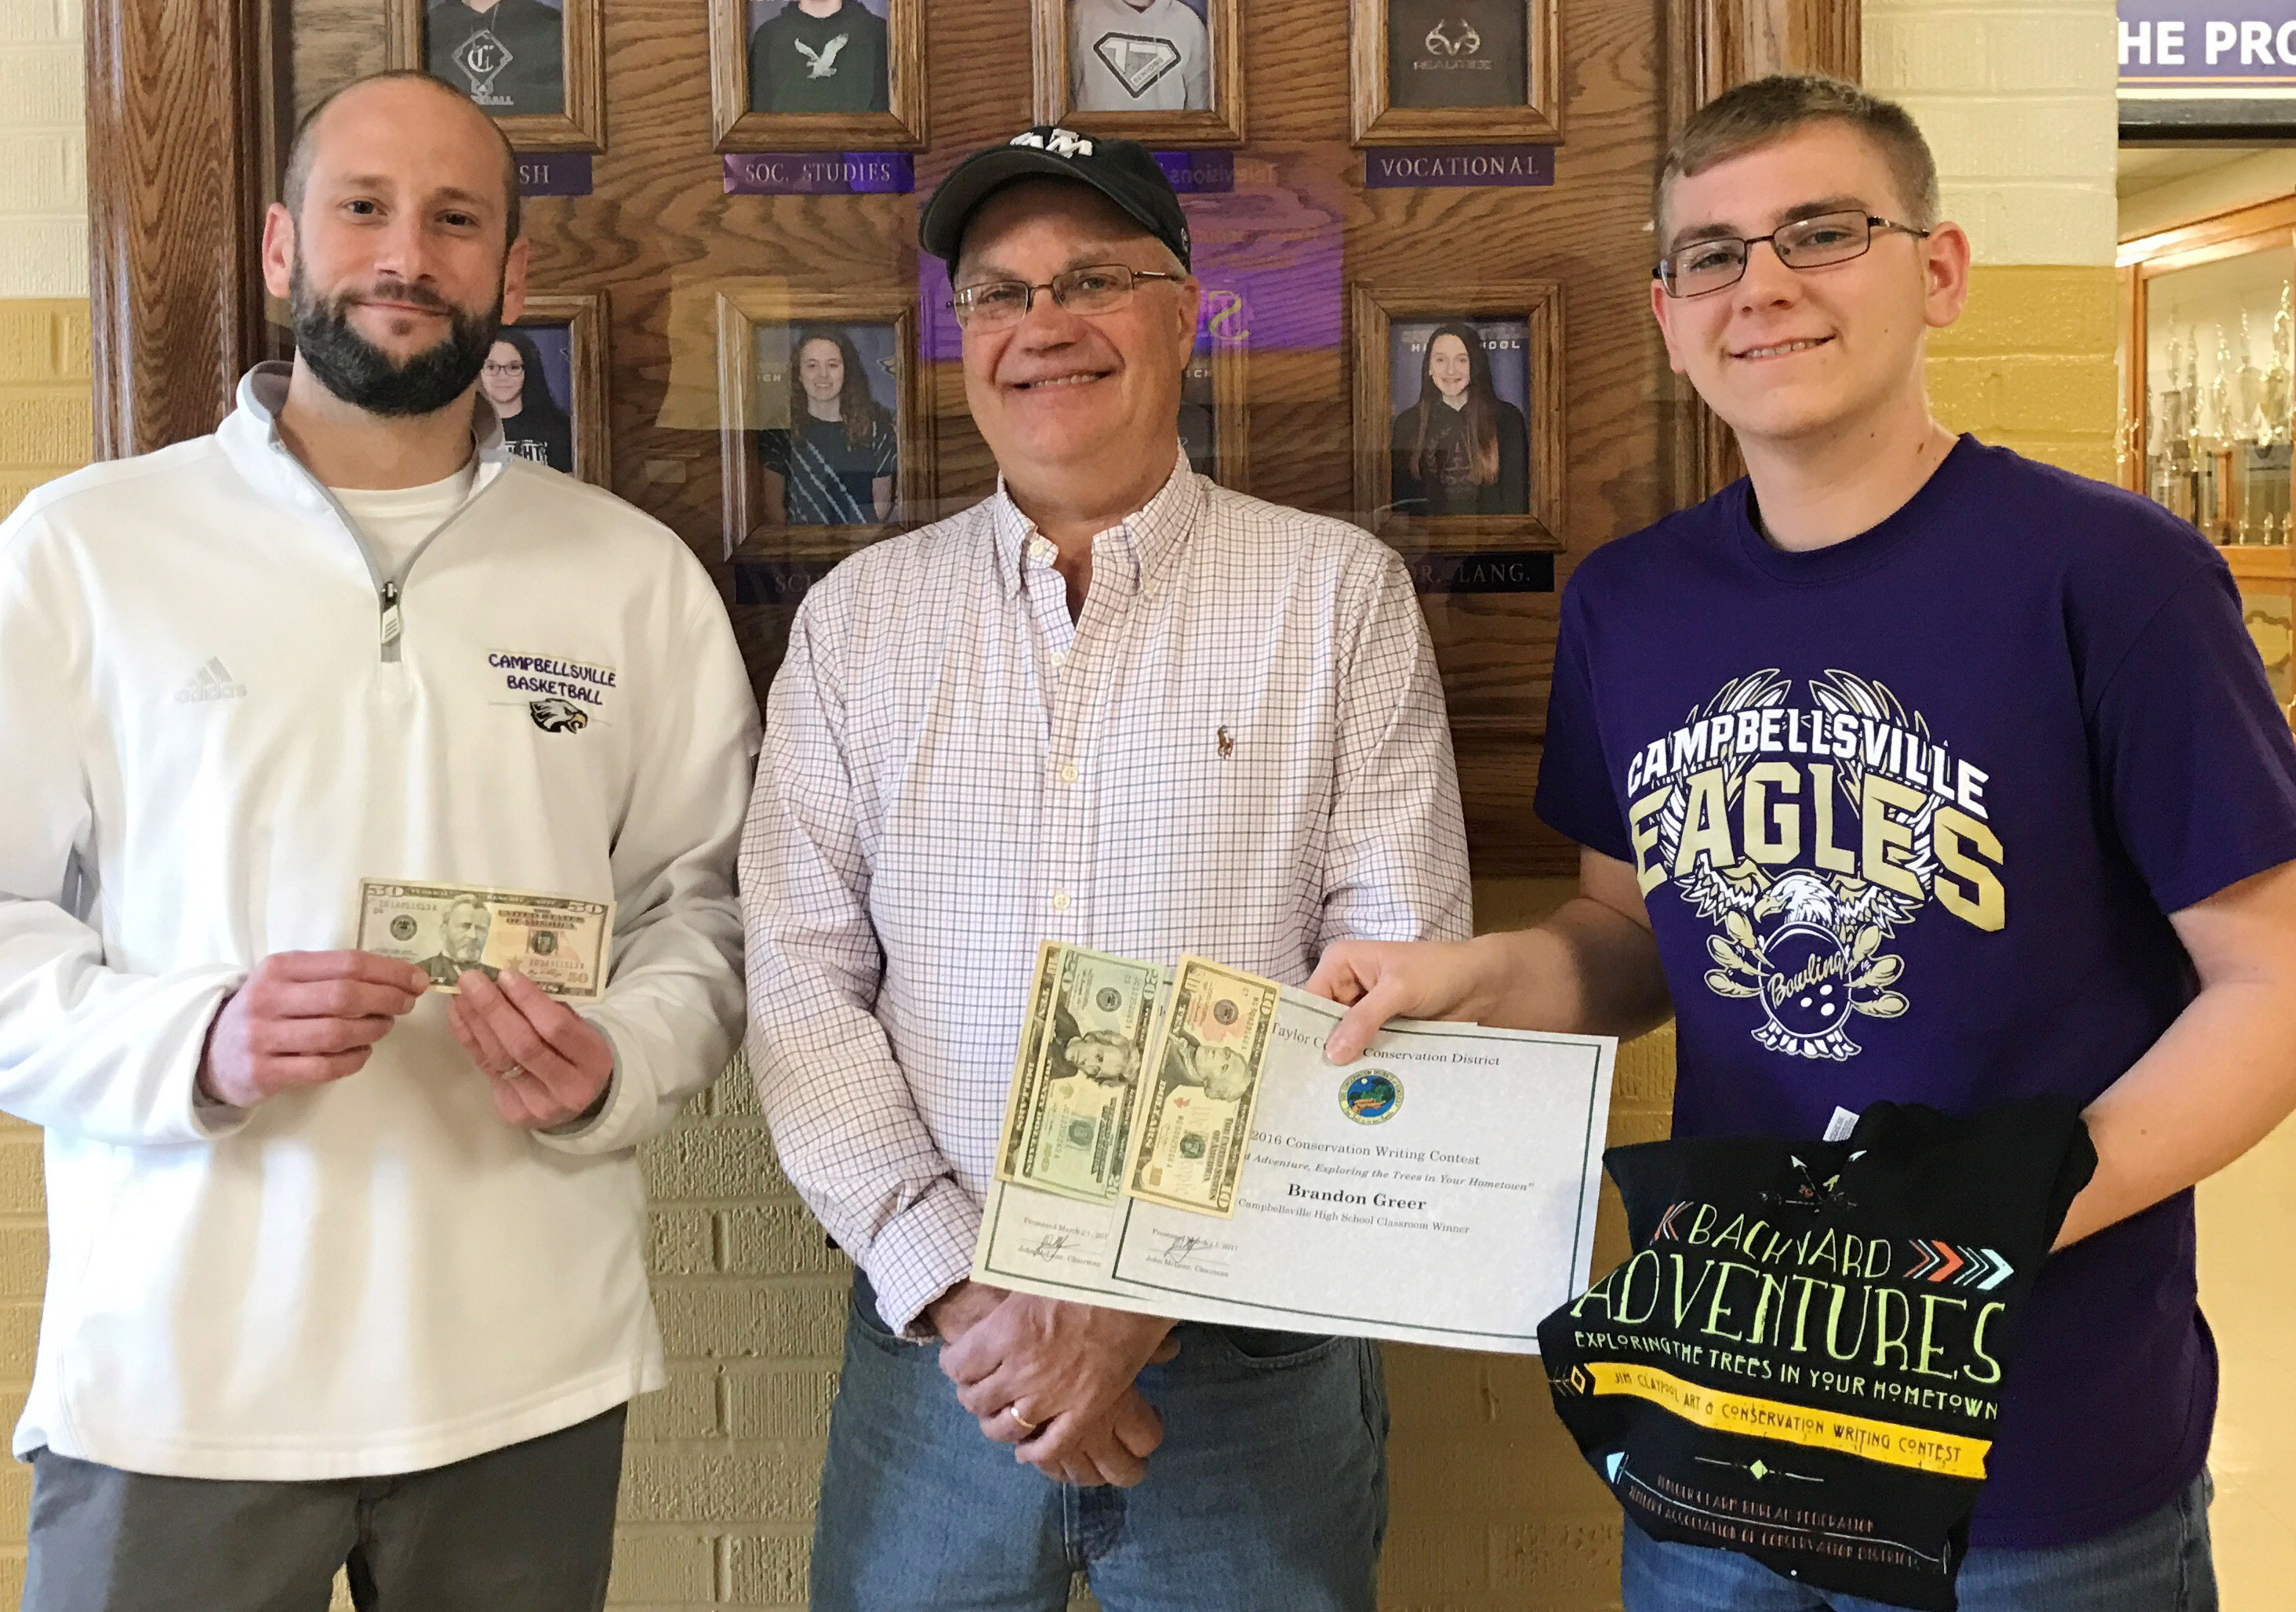 CHS sophomore Brandon Greer, at right, won the writing contest for his school and received his awards from Taylor County Conservation District Board Member Barry Smith, center. Greer's teacher Ben Davis, at left, won a $50 prize.